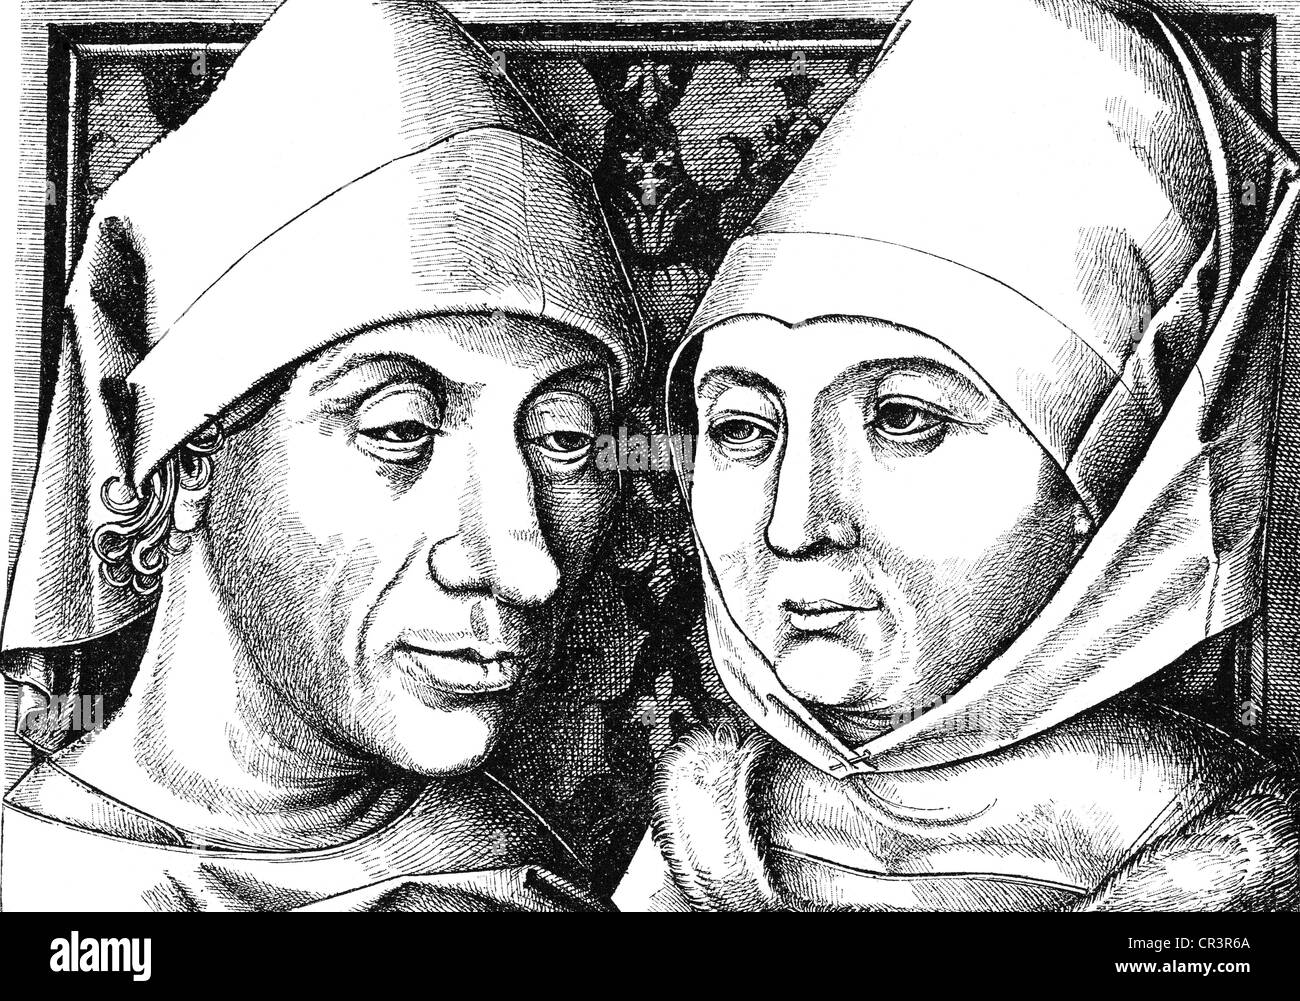 Meckenem, Israhel van, the Younger, circa 1440 - 10.11.1503, German copperplate engraver, self-portrait with wife - Stock Image